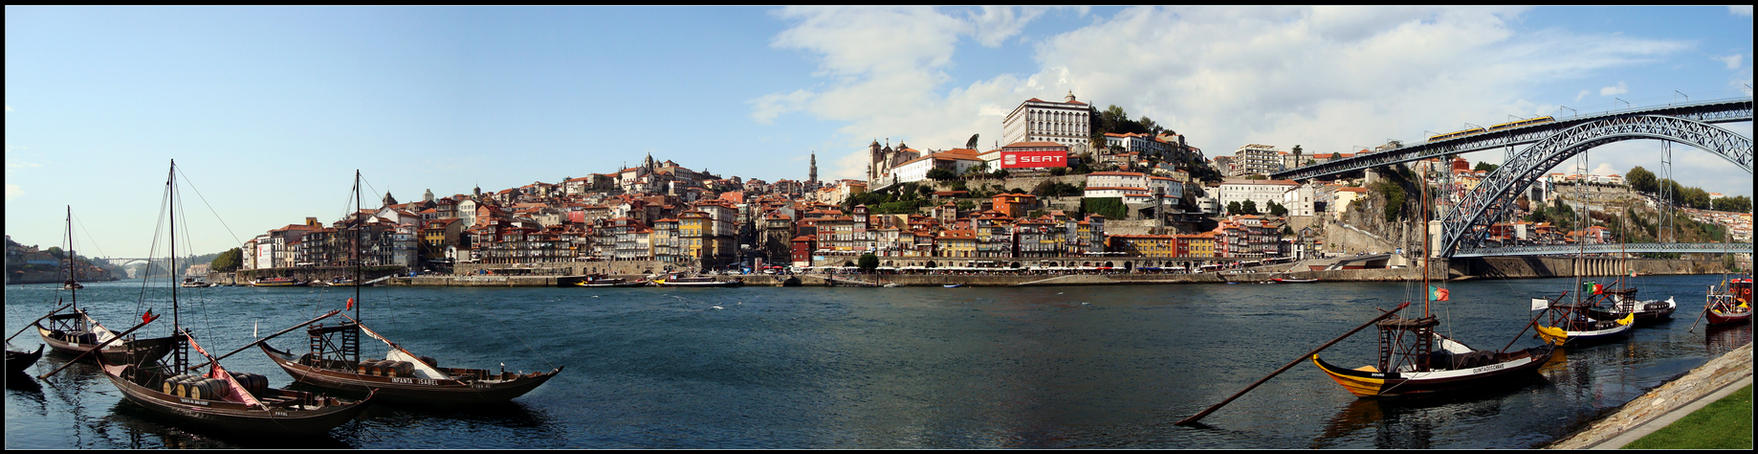 Portugal: Porto by CrLT